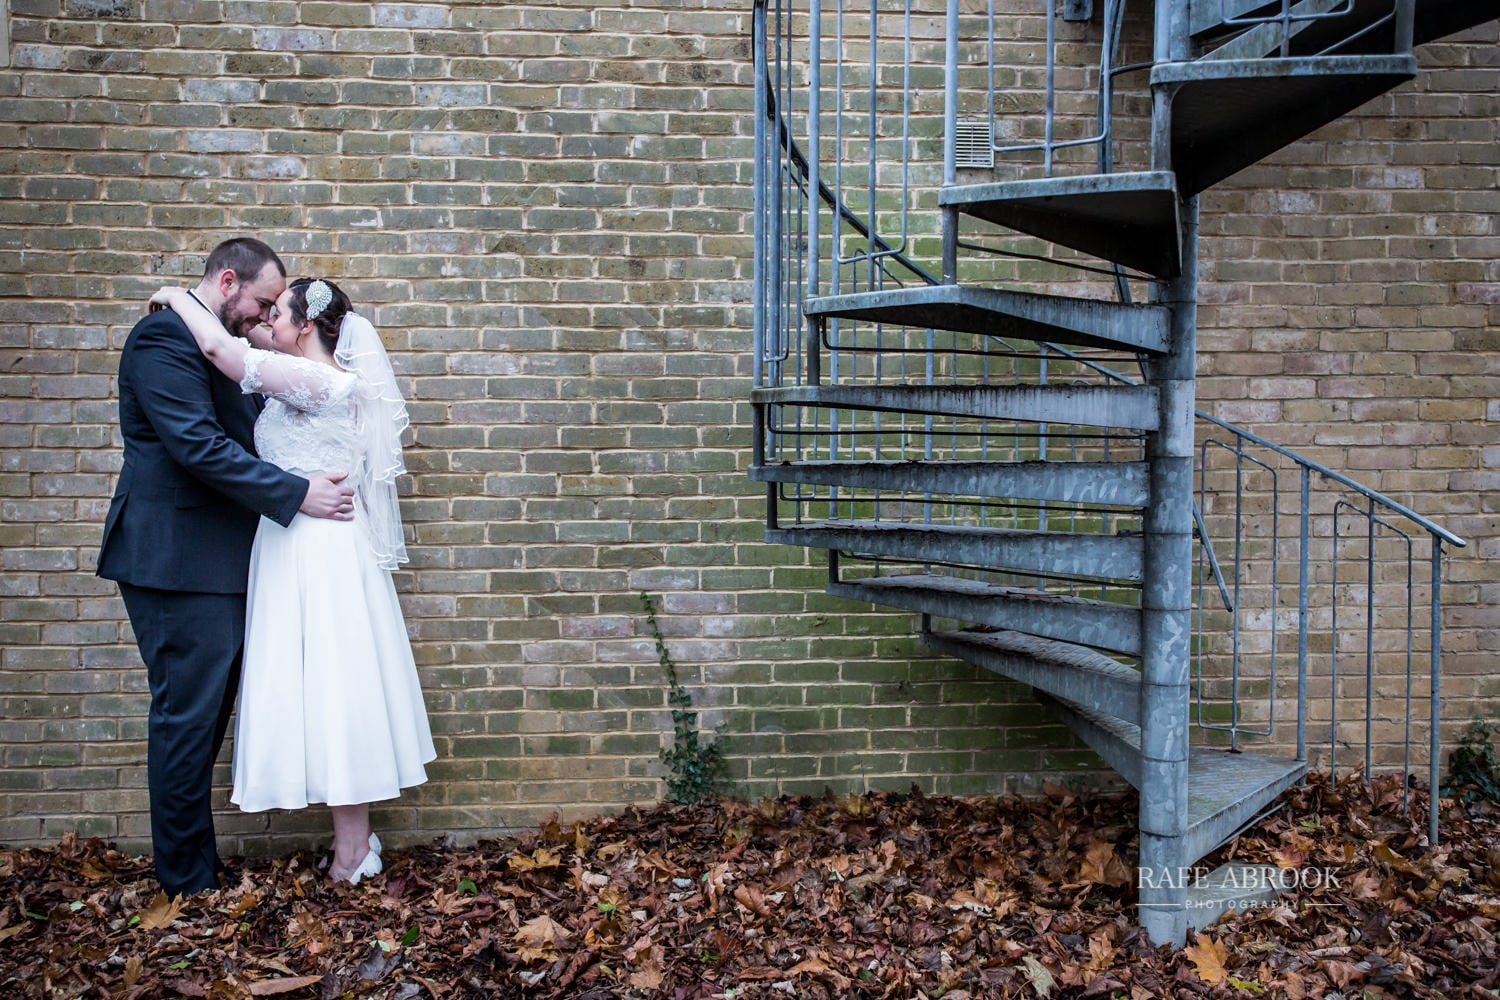 woodland manor hotel clapham bedford wedding hertfordshire wedding photographer-1161.jpg